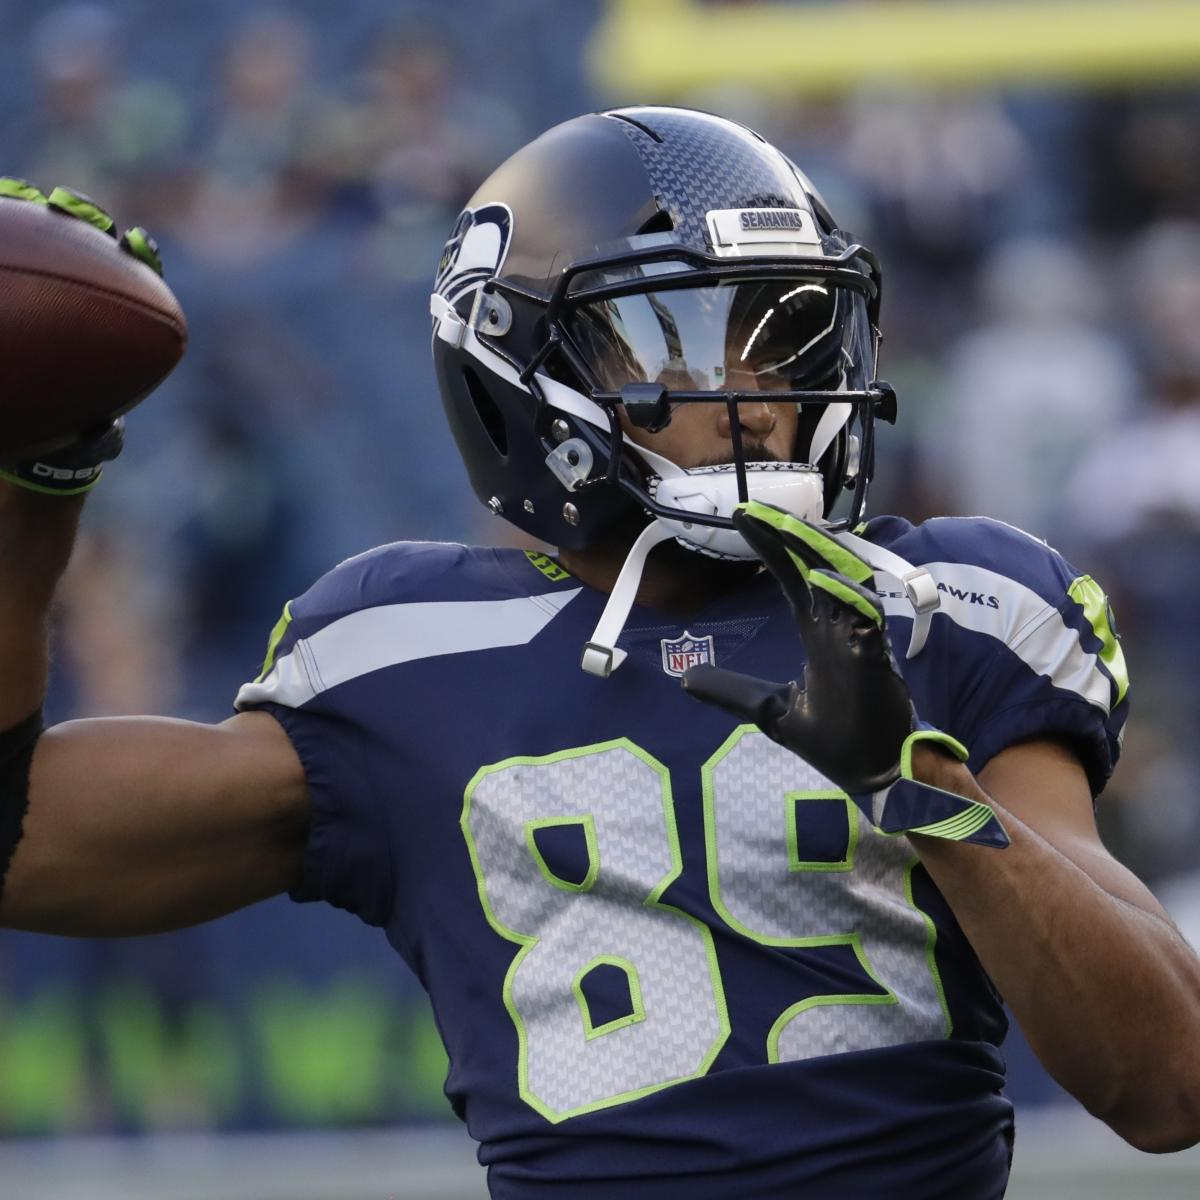 Seattle Seahawks Sign Doug Baldwin To 4 Year Extension: Doug Baldwin Will Play Week 4 After Recovering From Knee